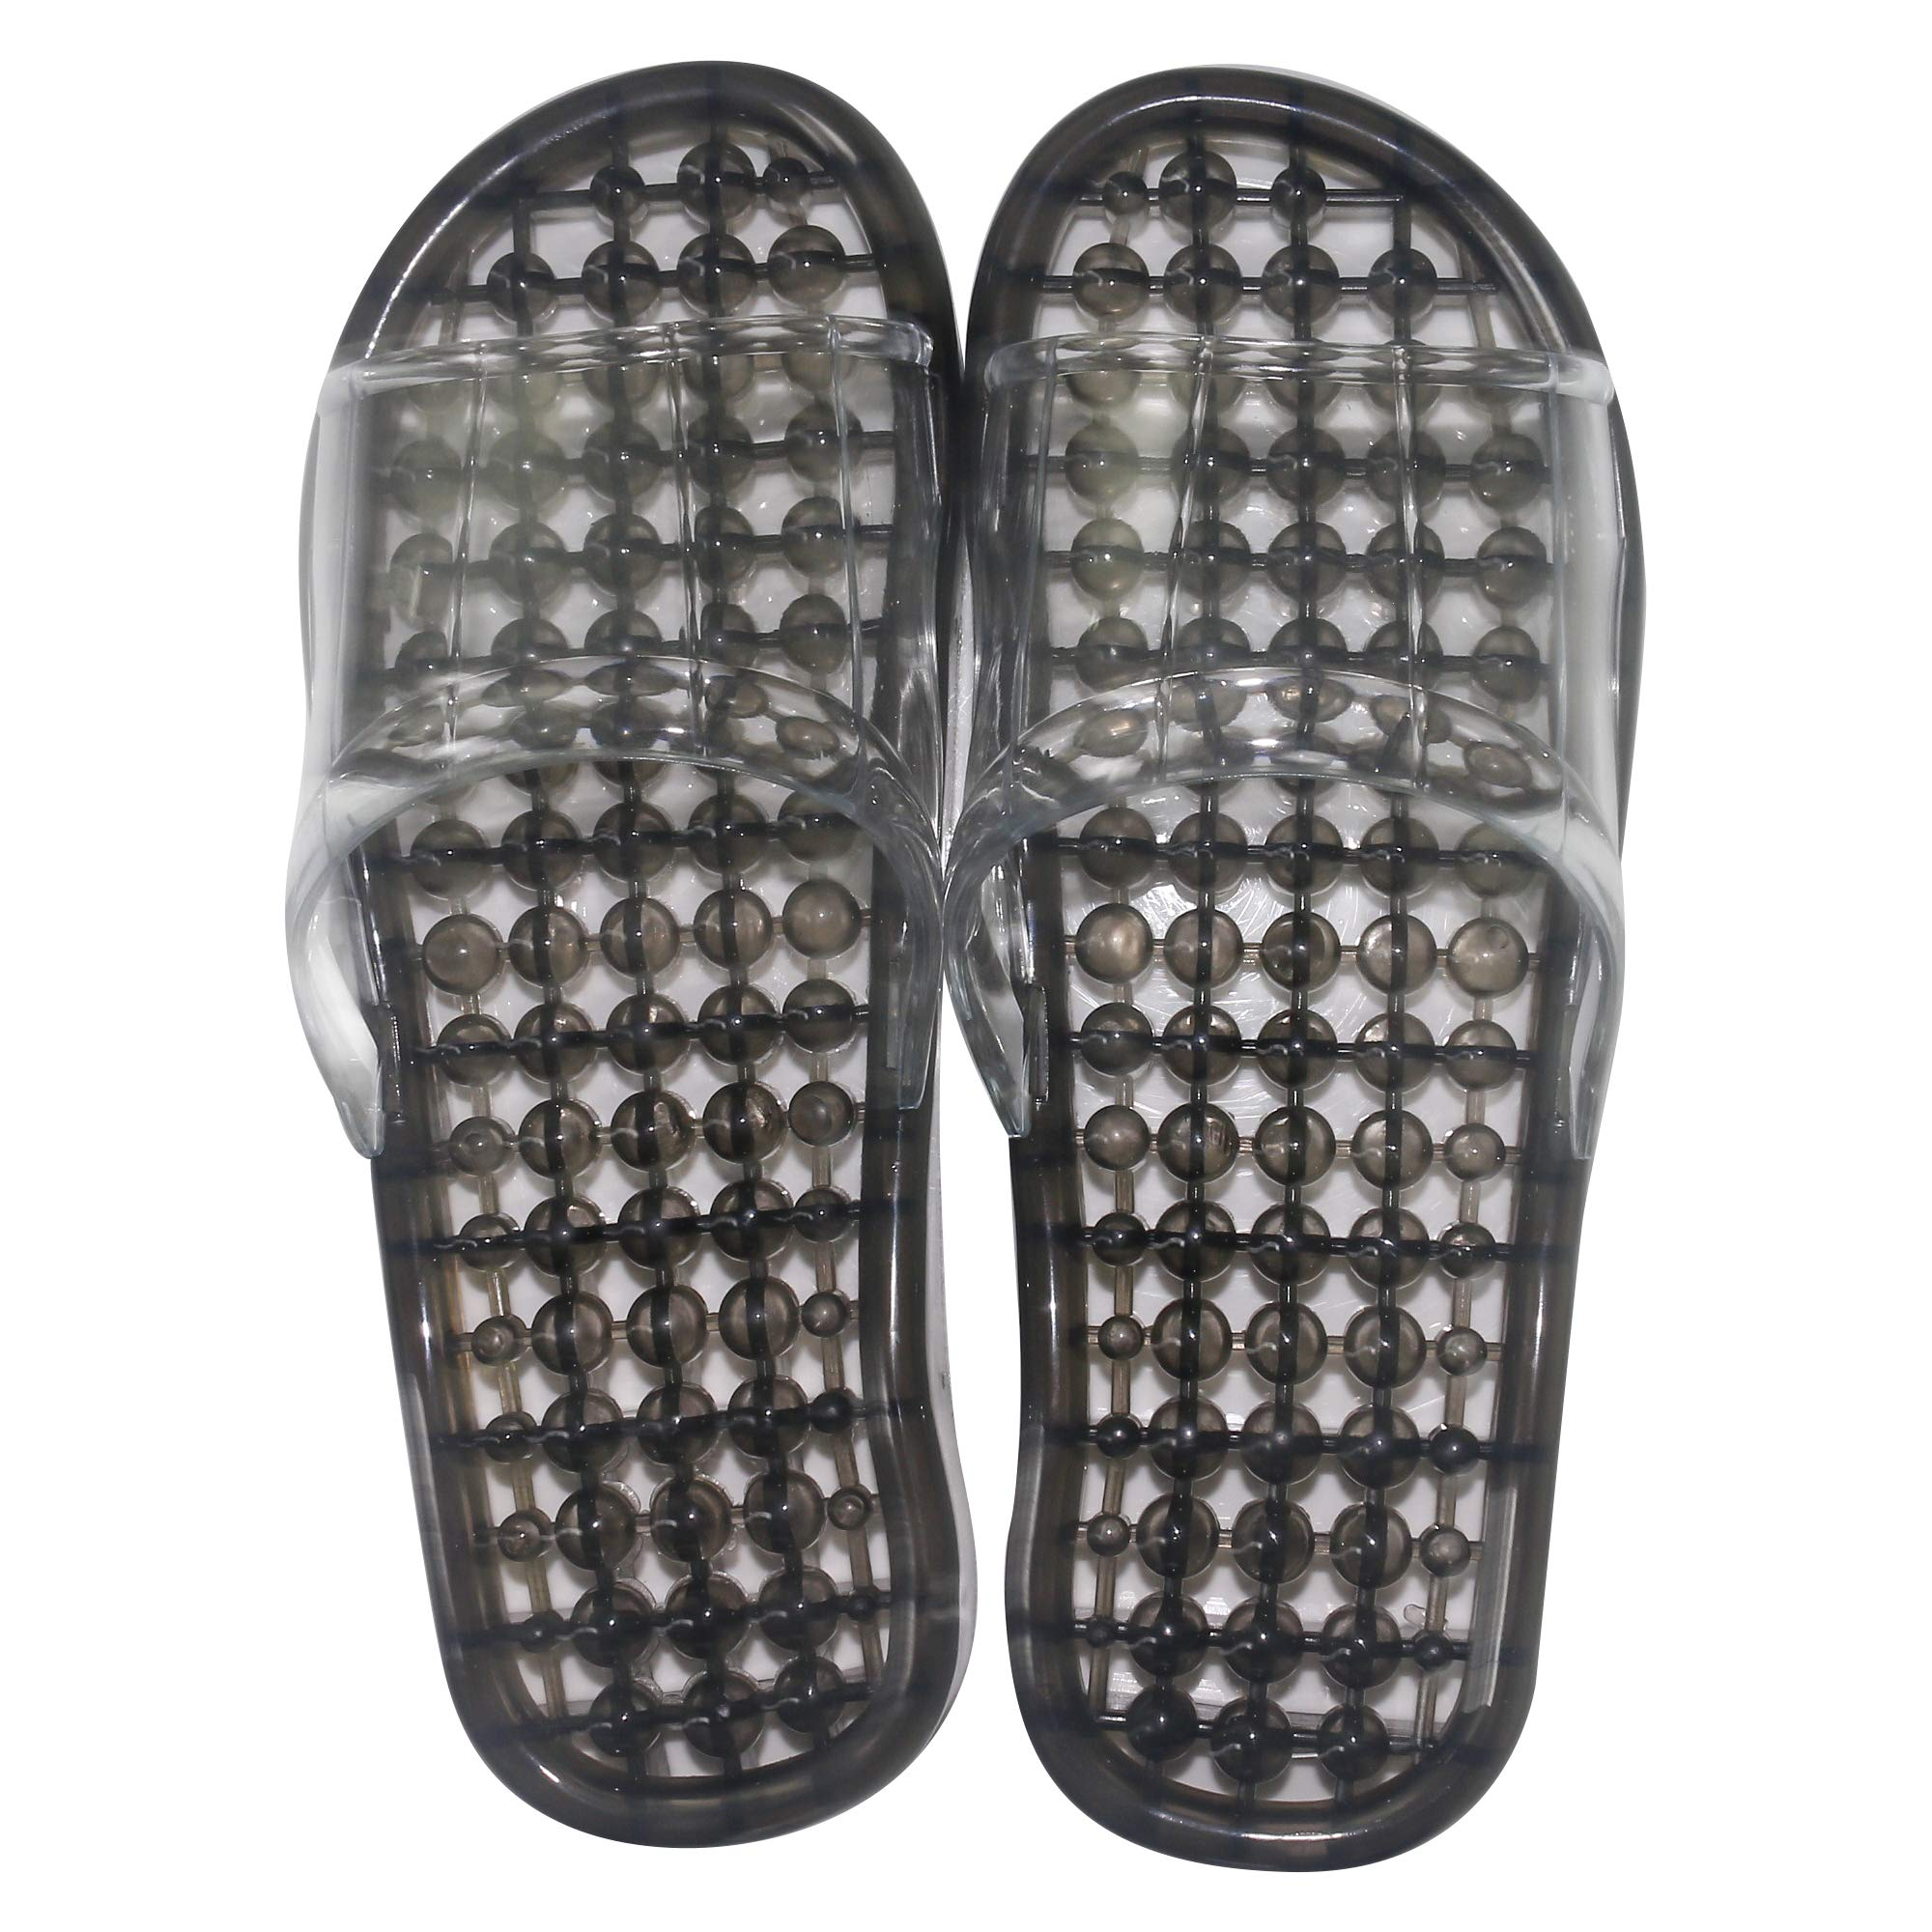 Massage Slippers,URBEST Feet Meridians Fashion Quick Drying Breathable Shower Slippers, Foot Massgaer Shoes, Spa Shoes (M, Black)